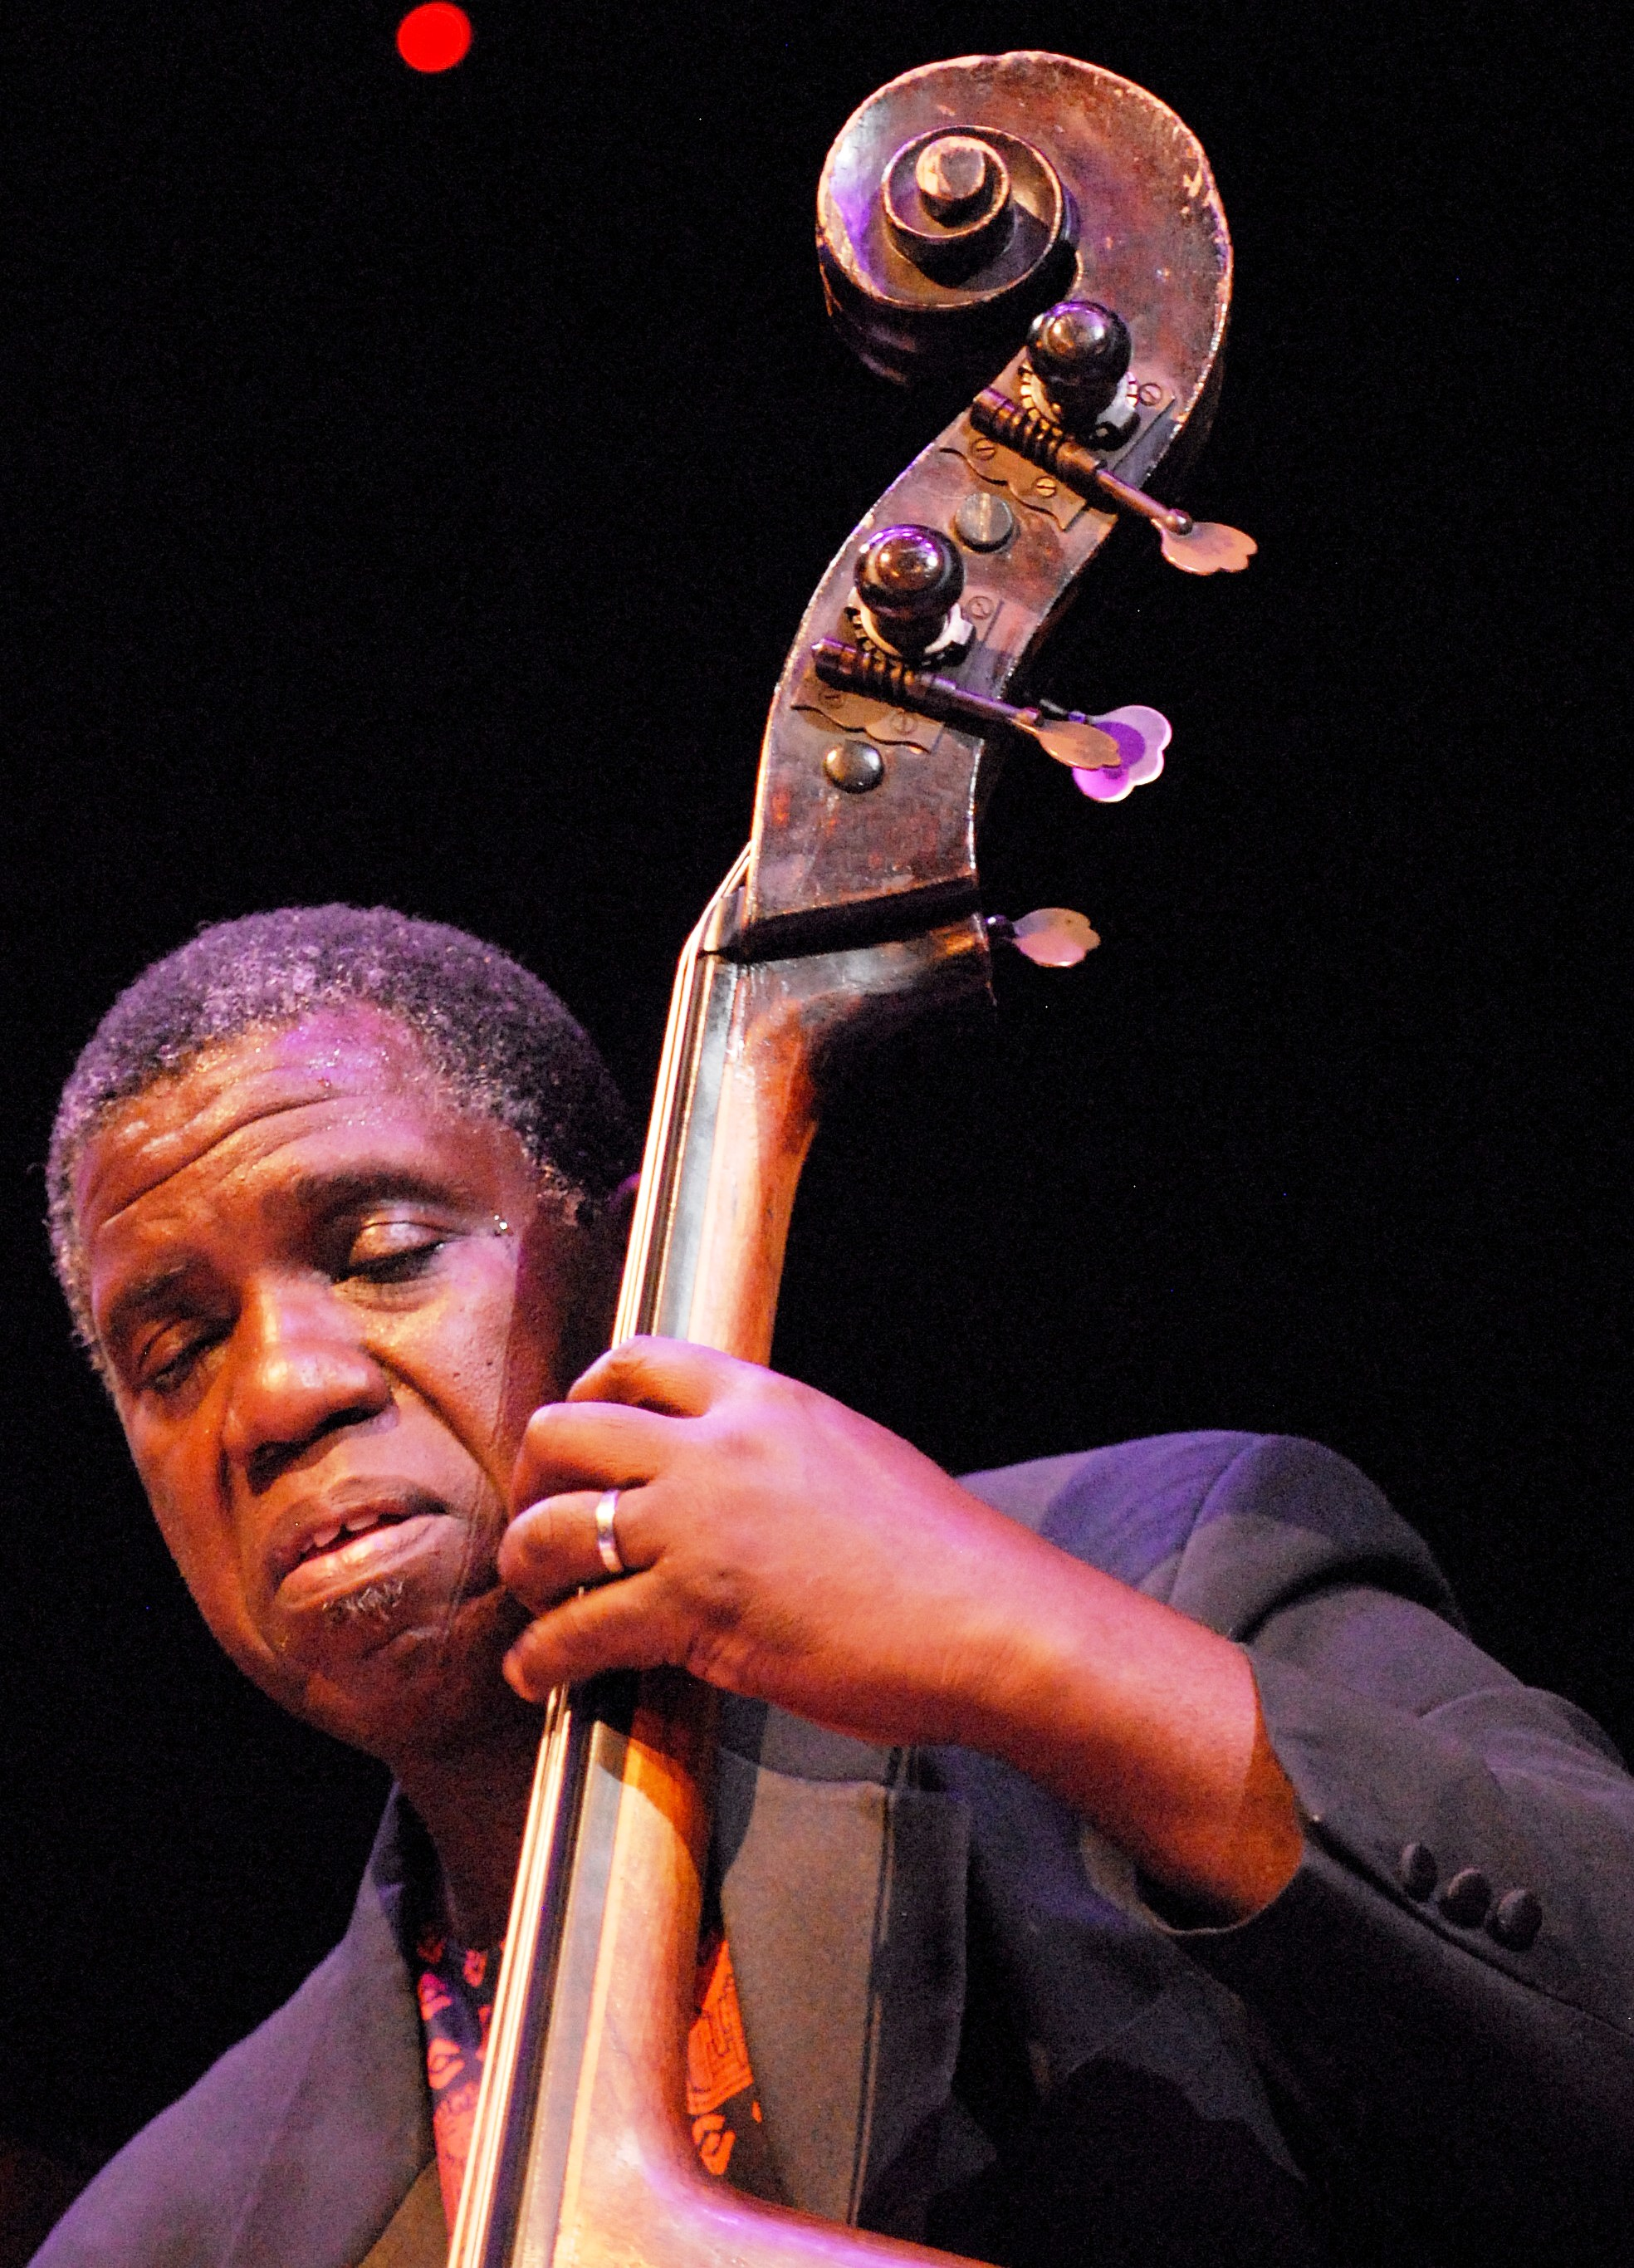 Hill Greene Plays Bass